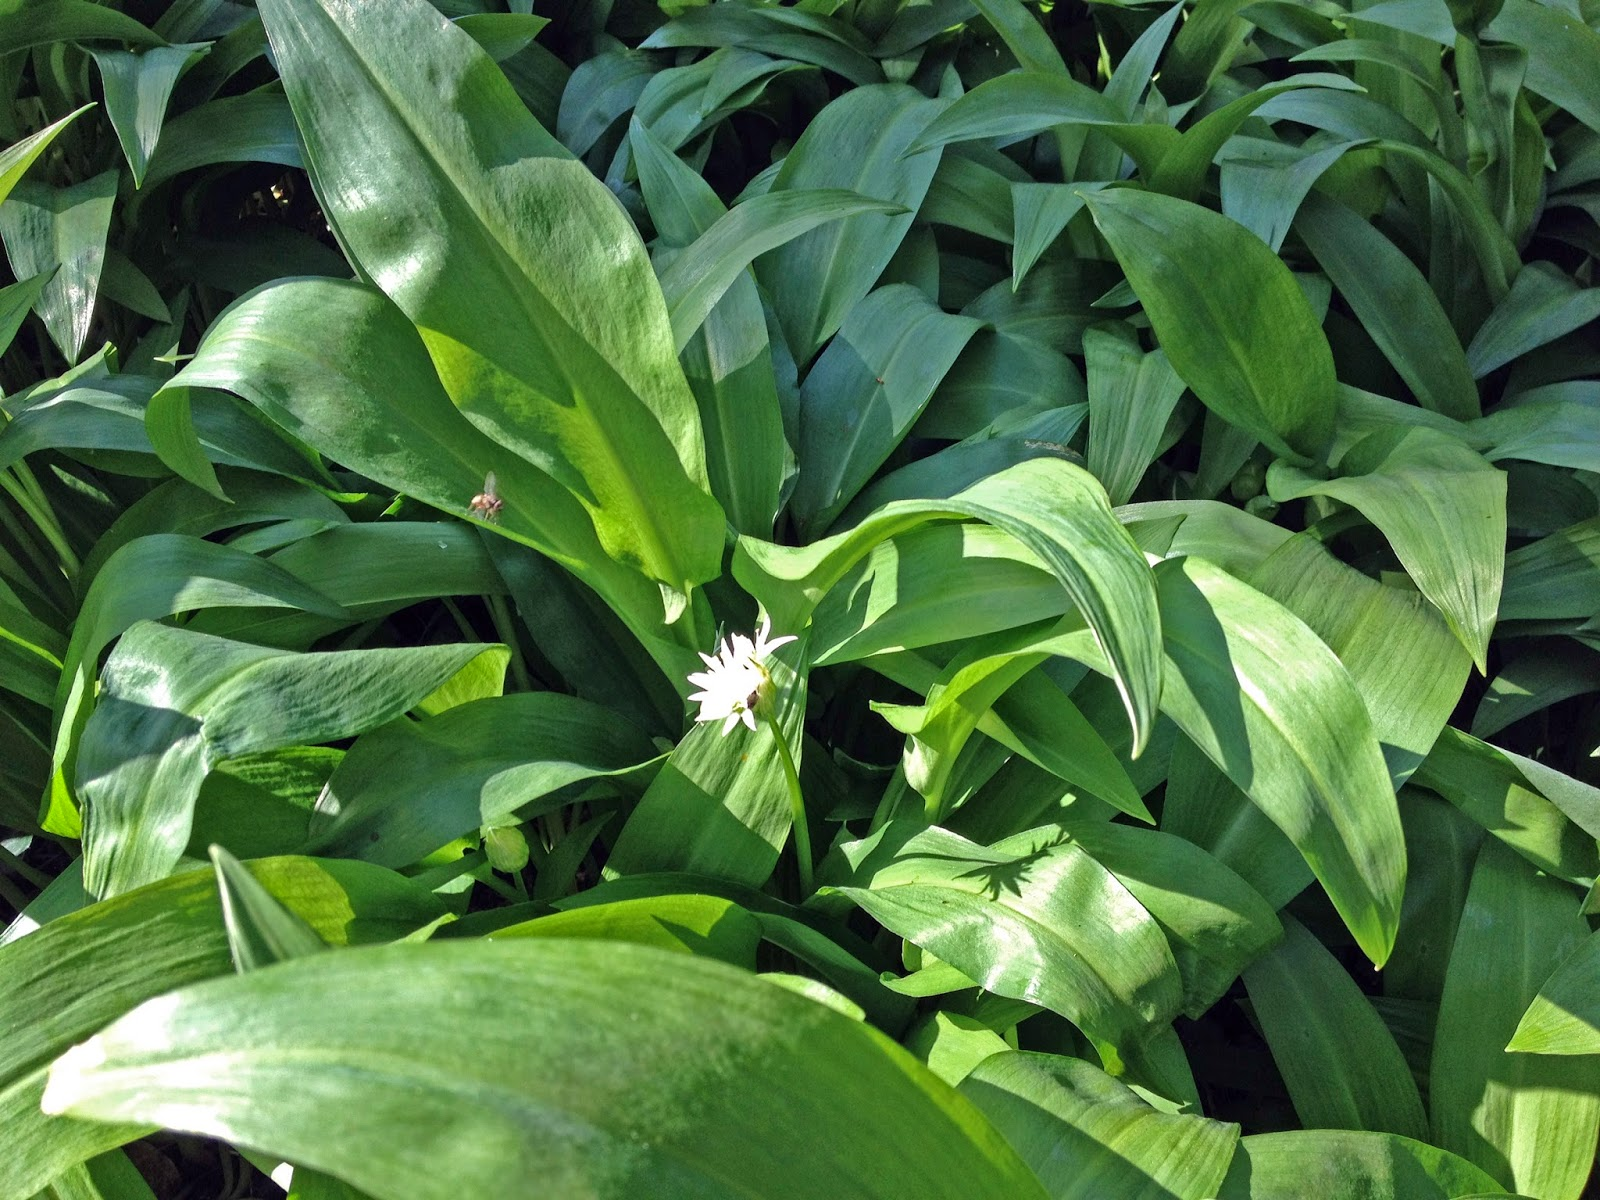 wild garlic - sometimes called ramps